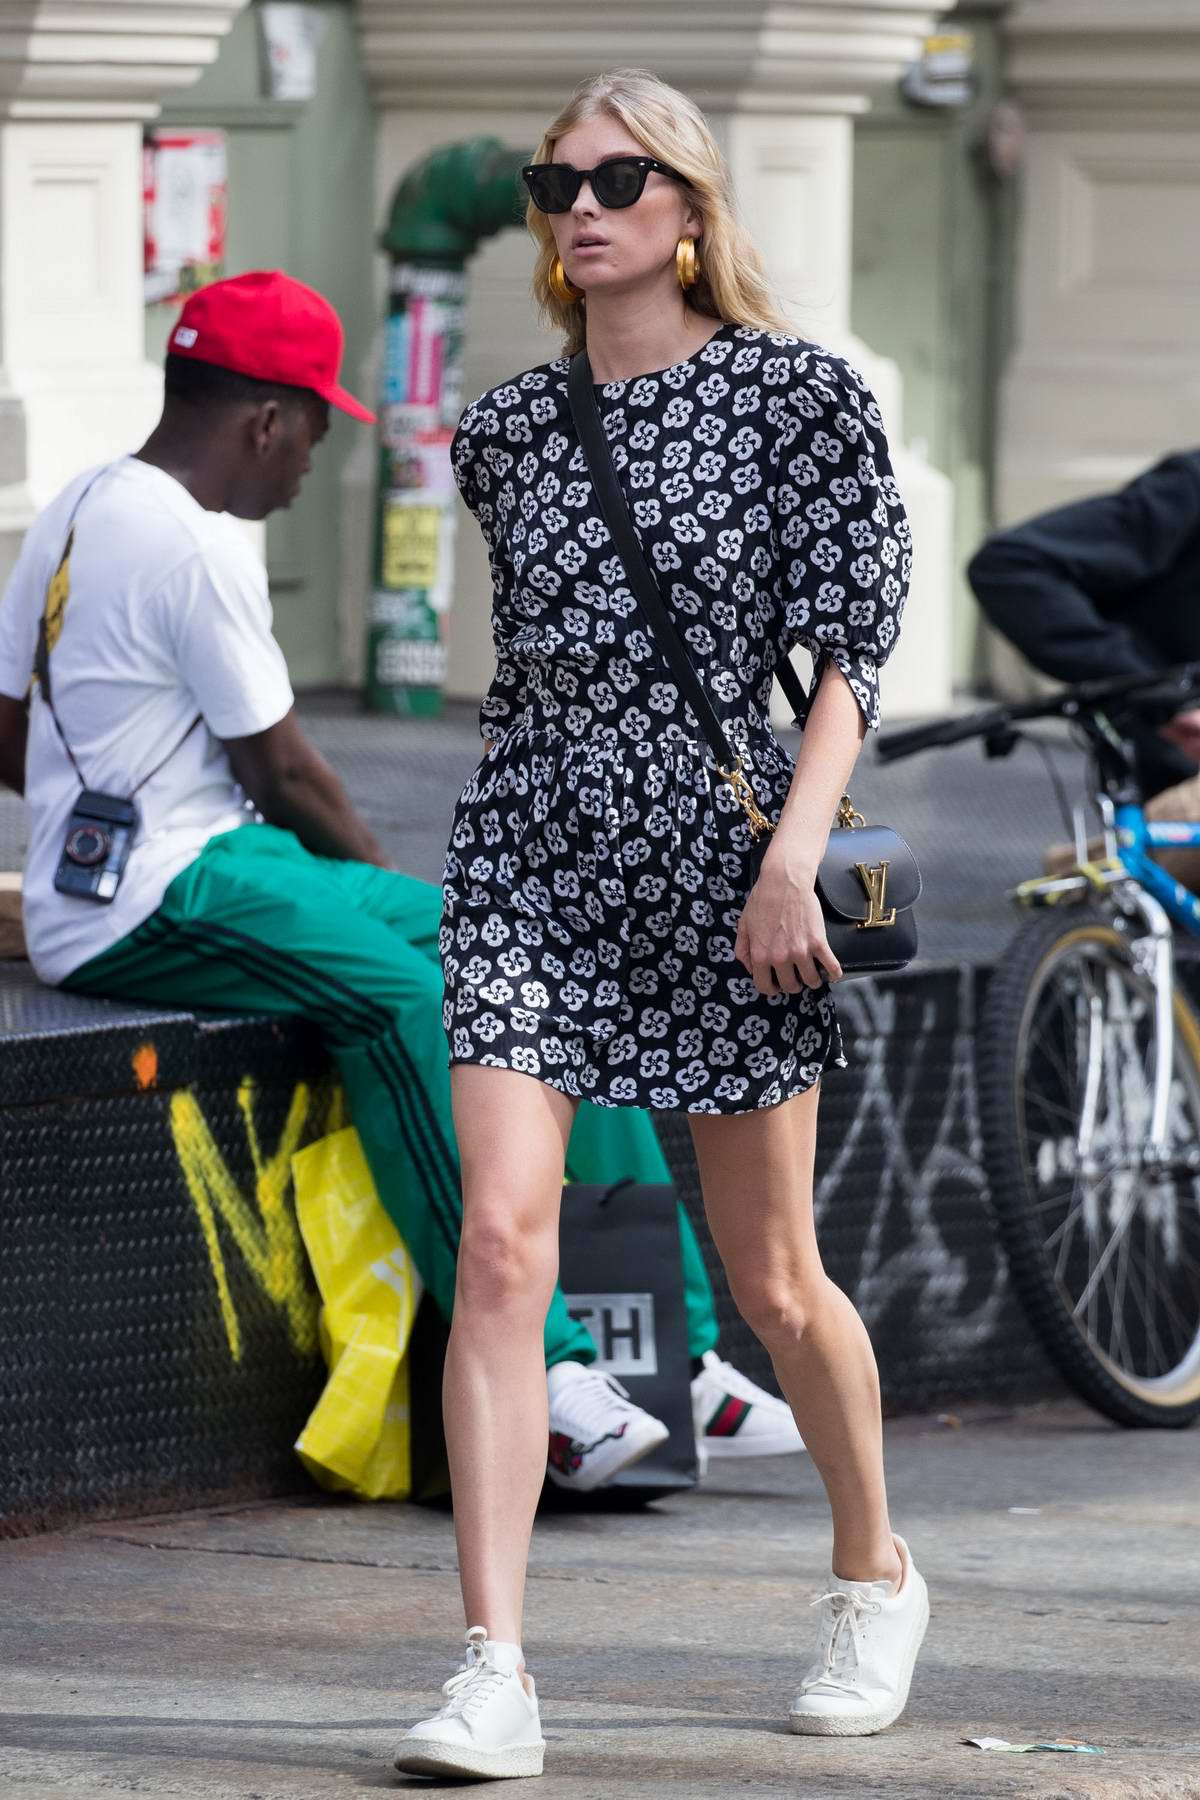 Elsa Hosk in a short dress and white sneakers out and about during fashion week in New York City